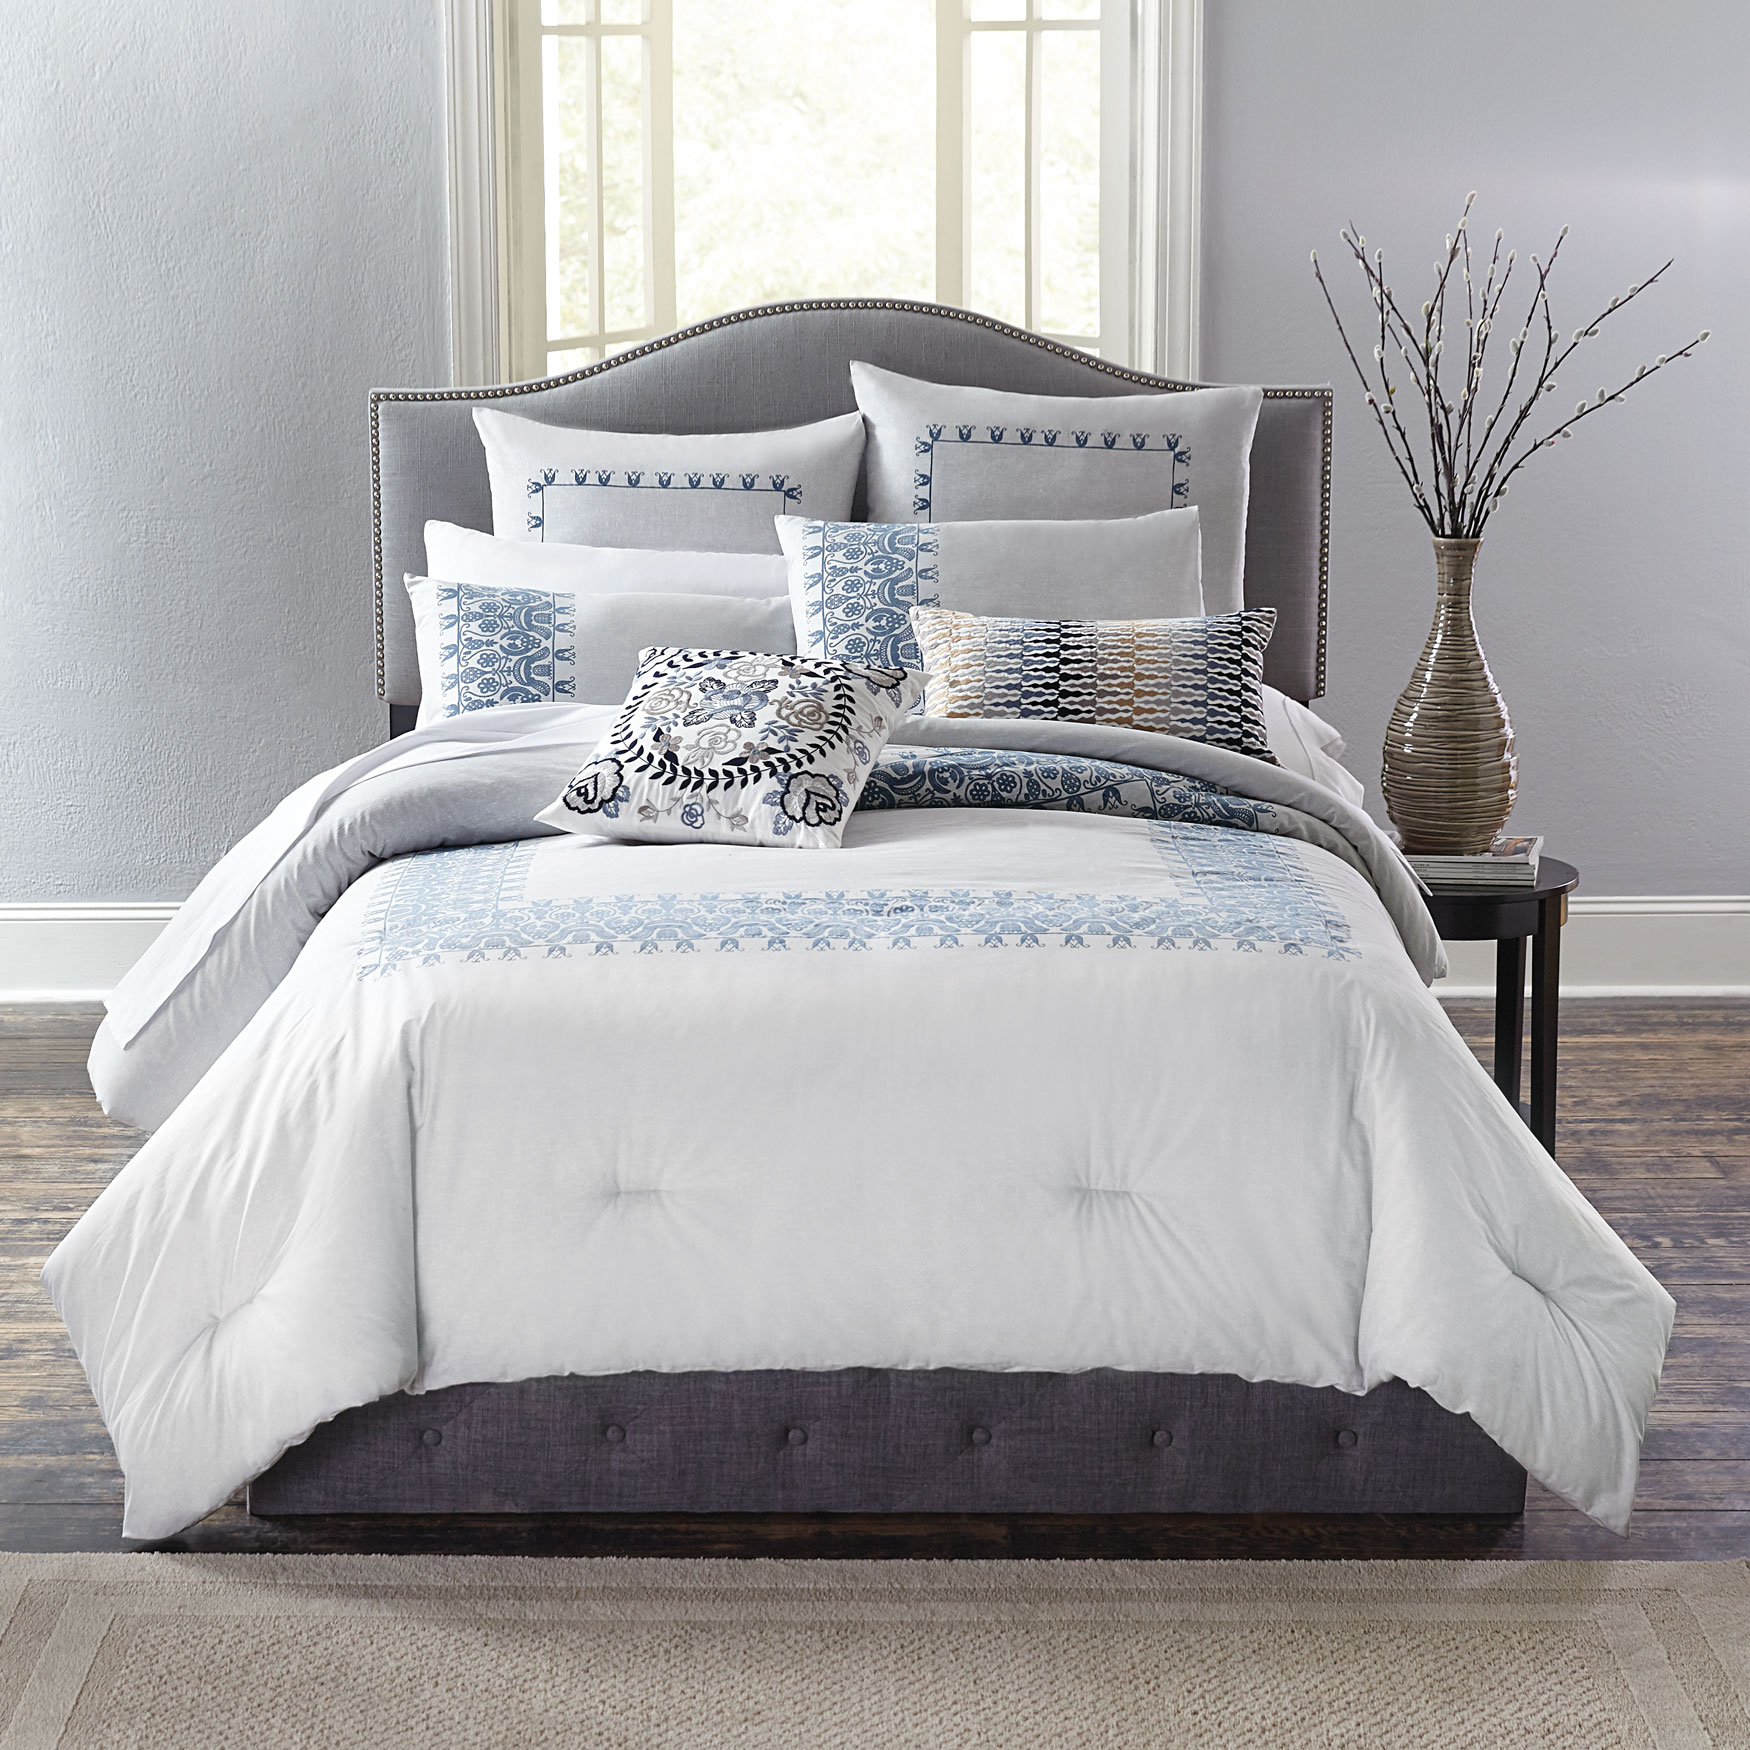 Margot Puff Printed Comforter,